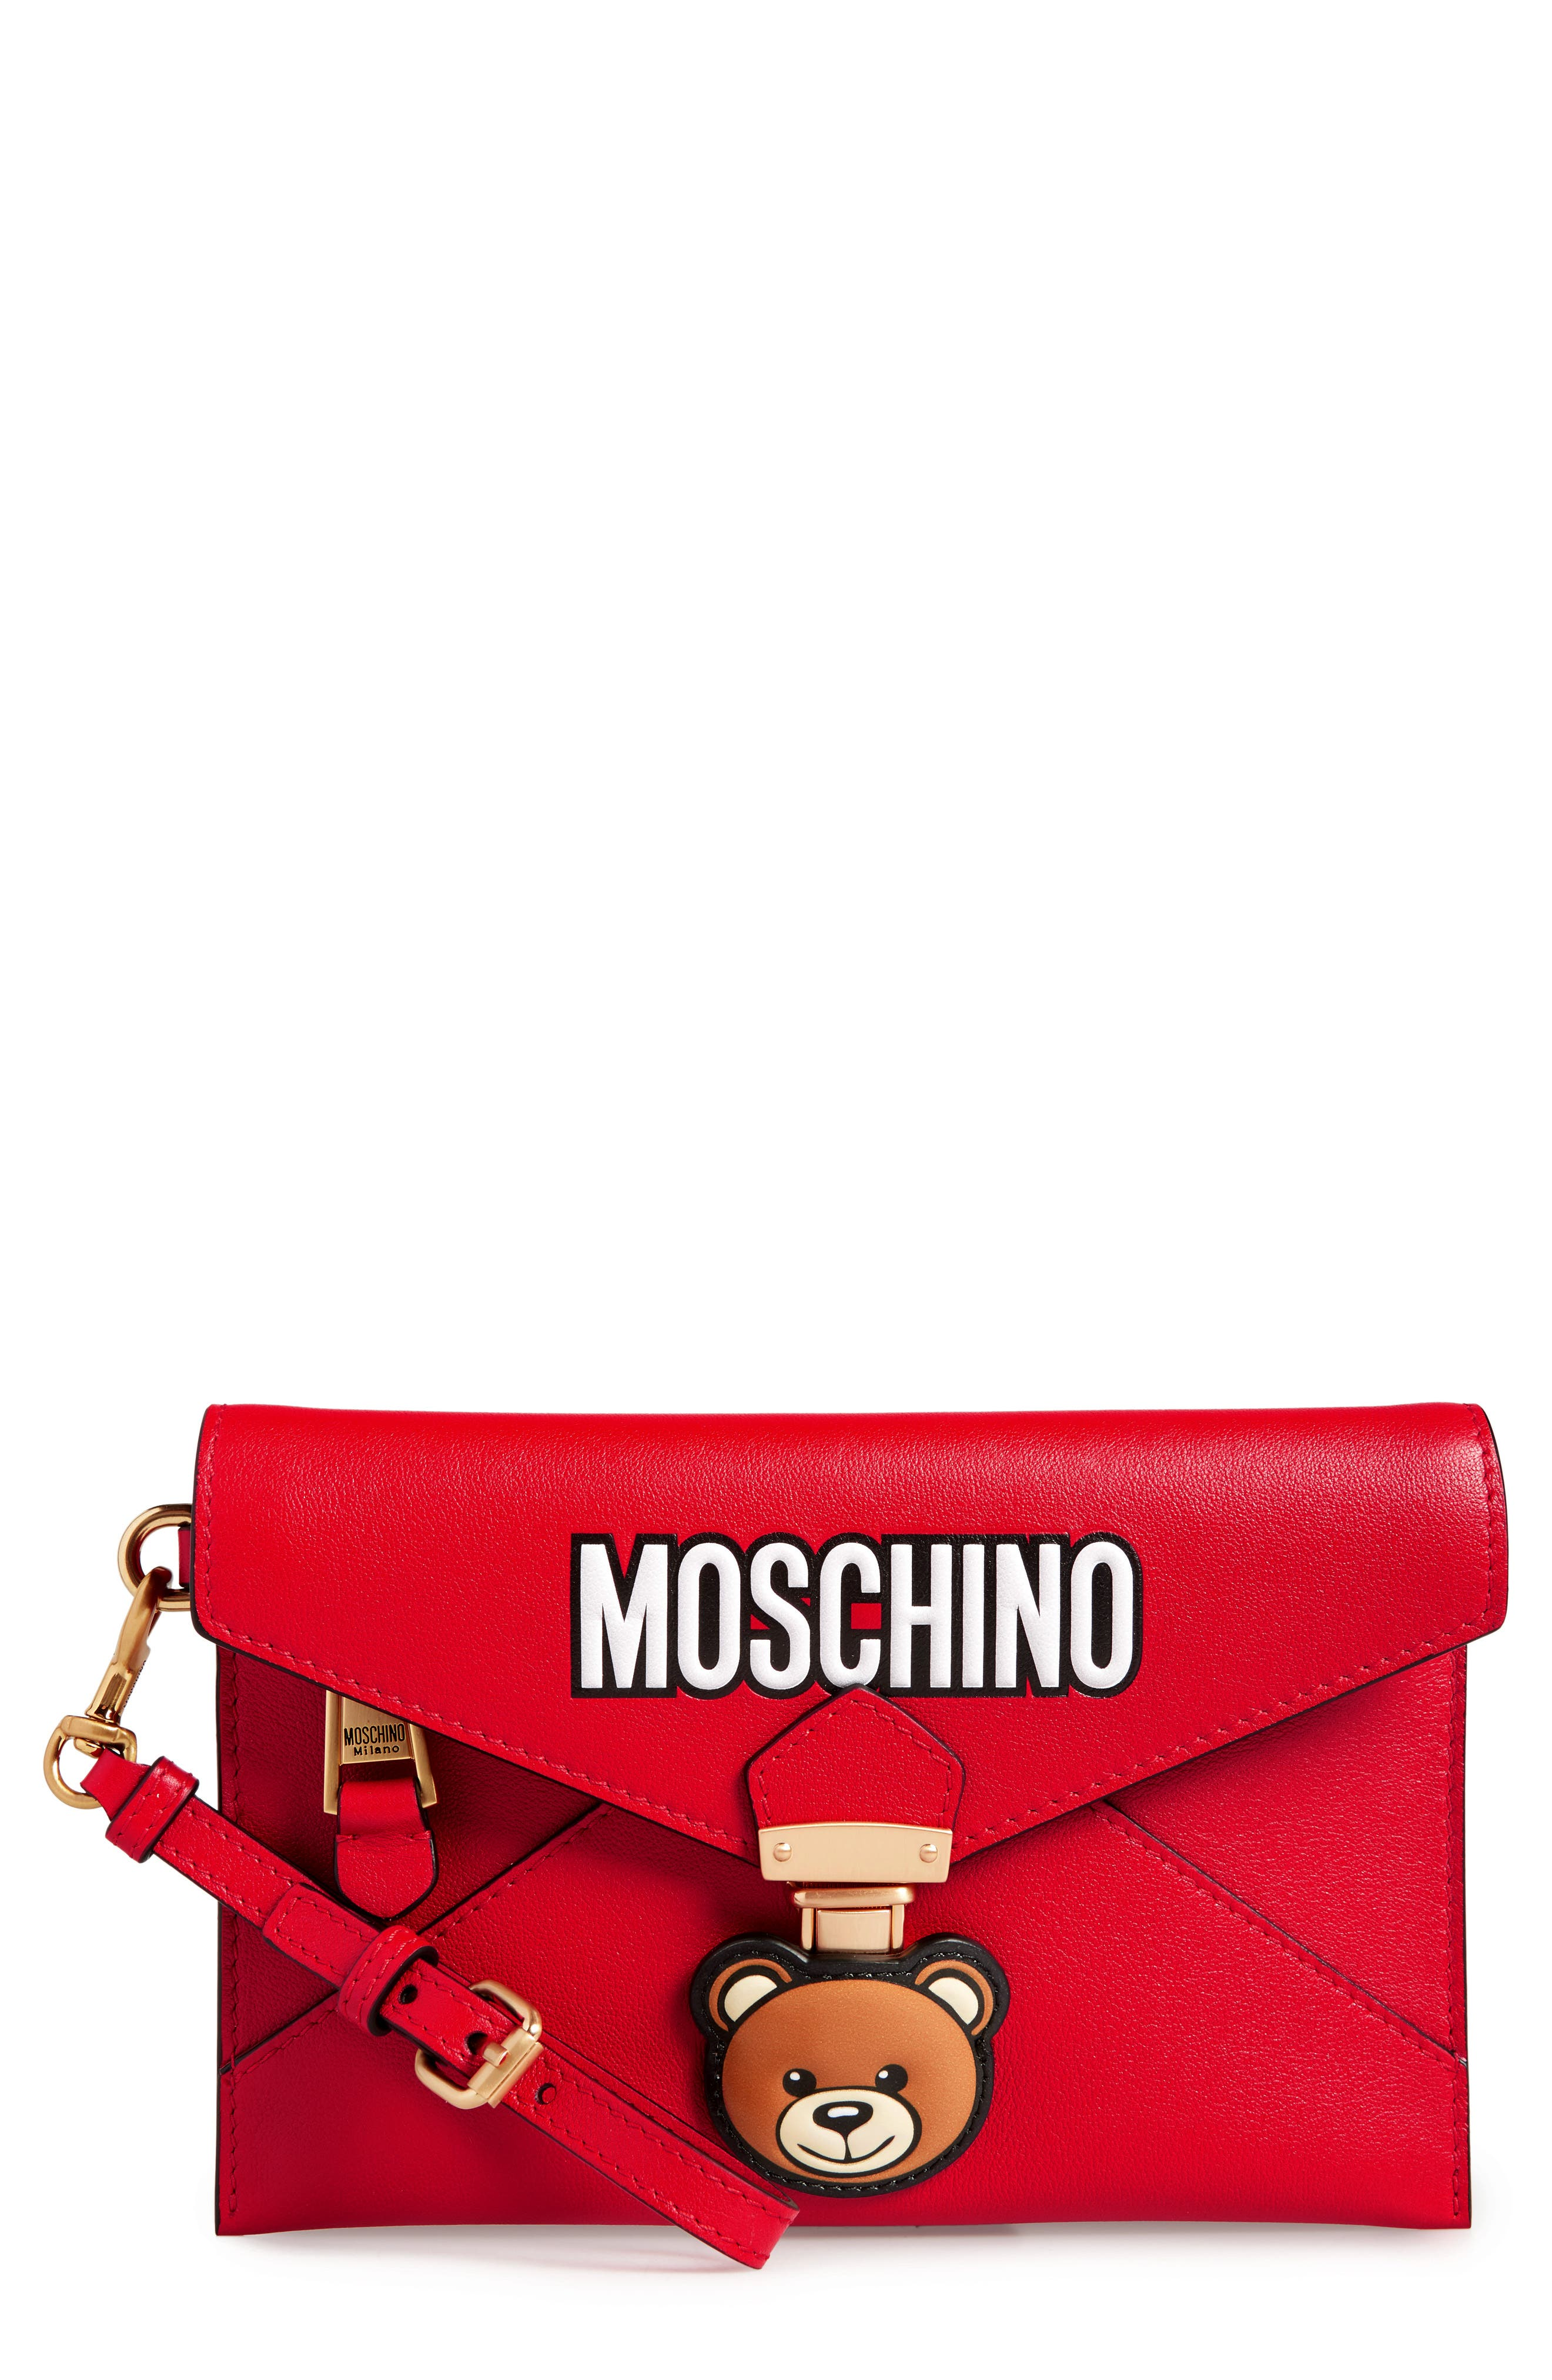 MOSCHINO, Bear Faux Leather Wristlet, Main thumbnail 1, color, RED